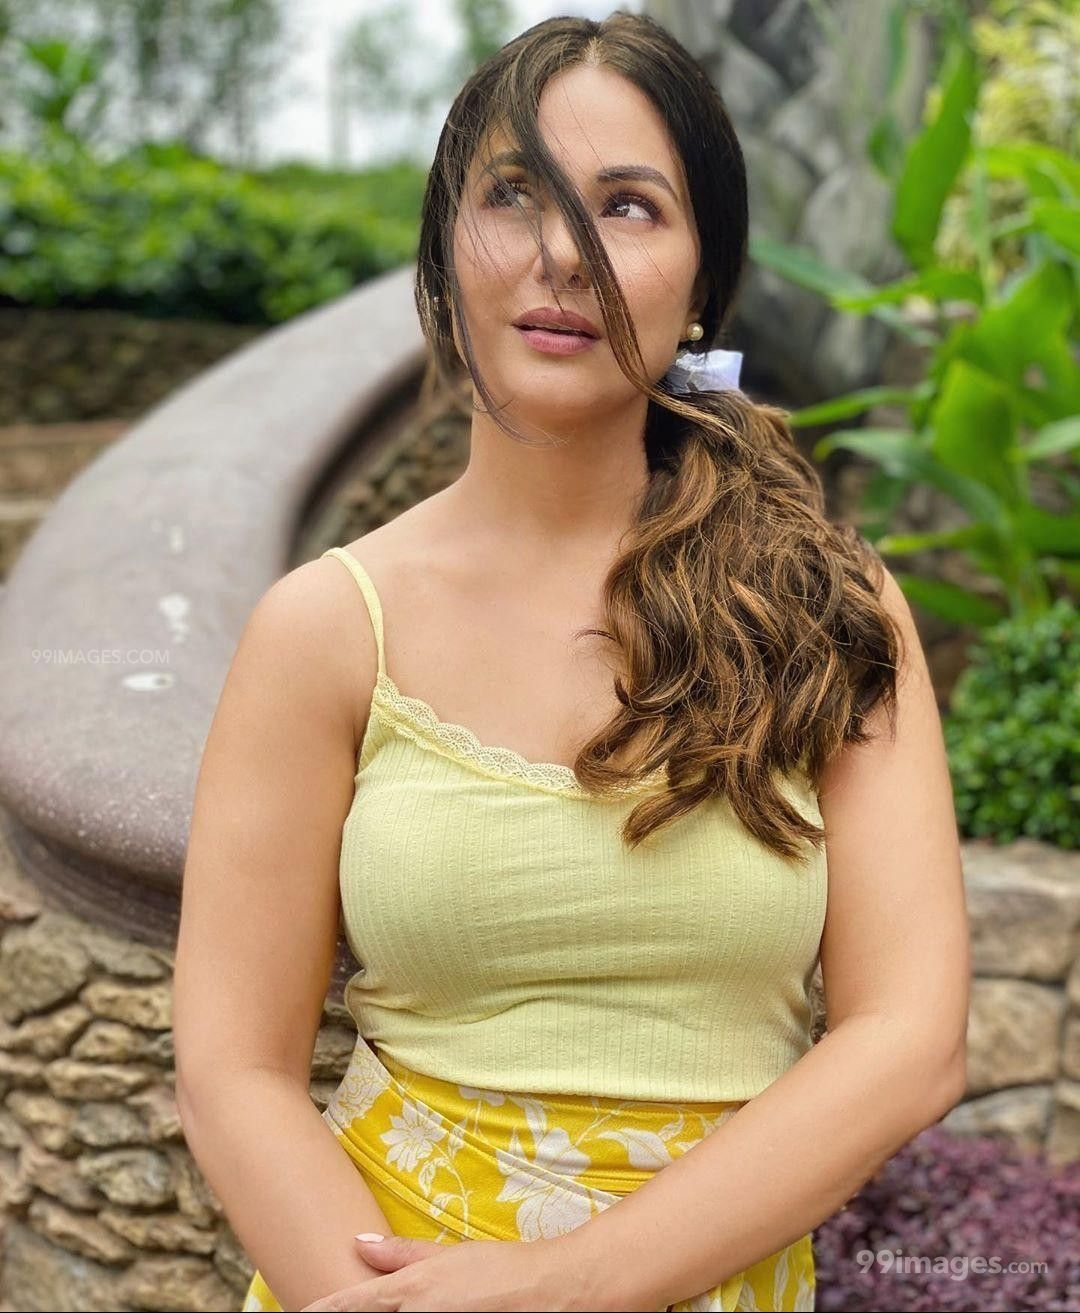 Hina Khan Hot HD Photos & Wallpapers for mobile (1080p) (578177) - Hina Khan